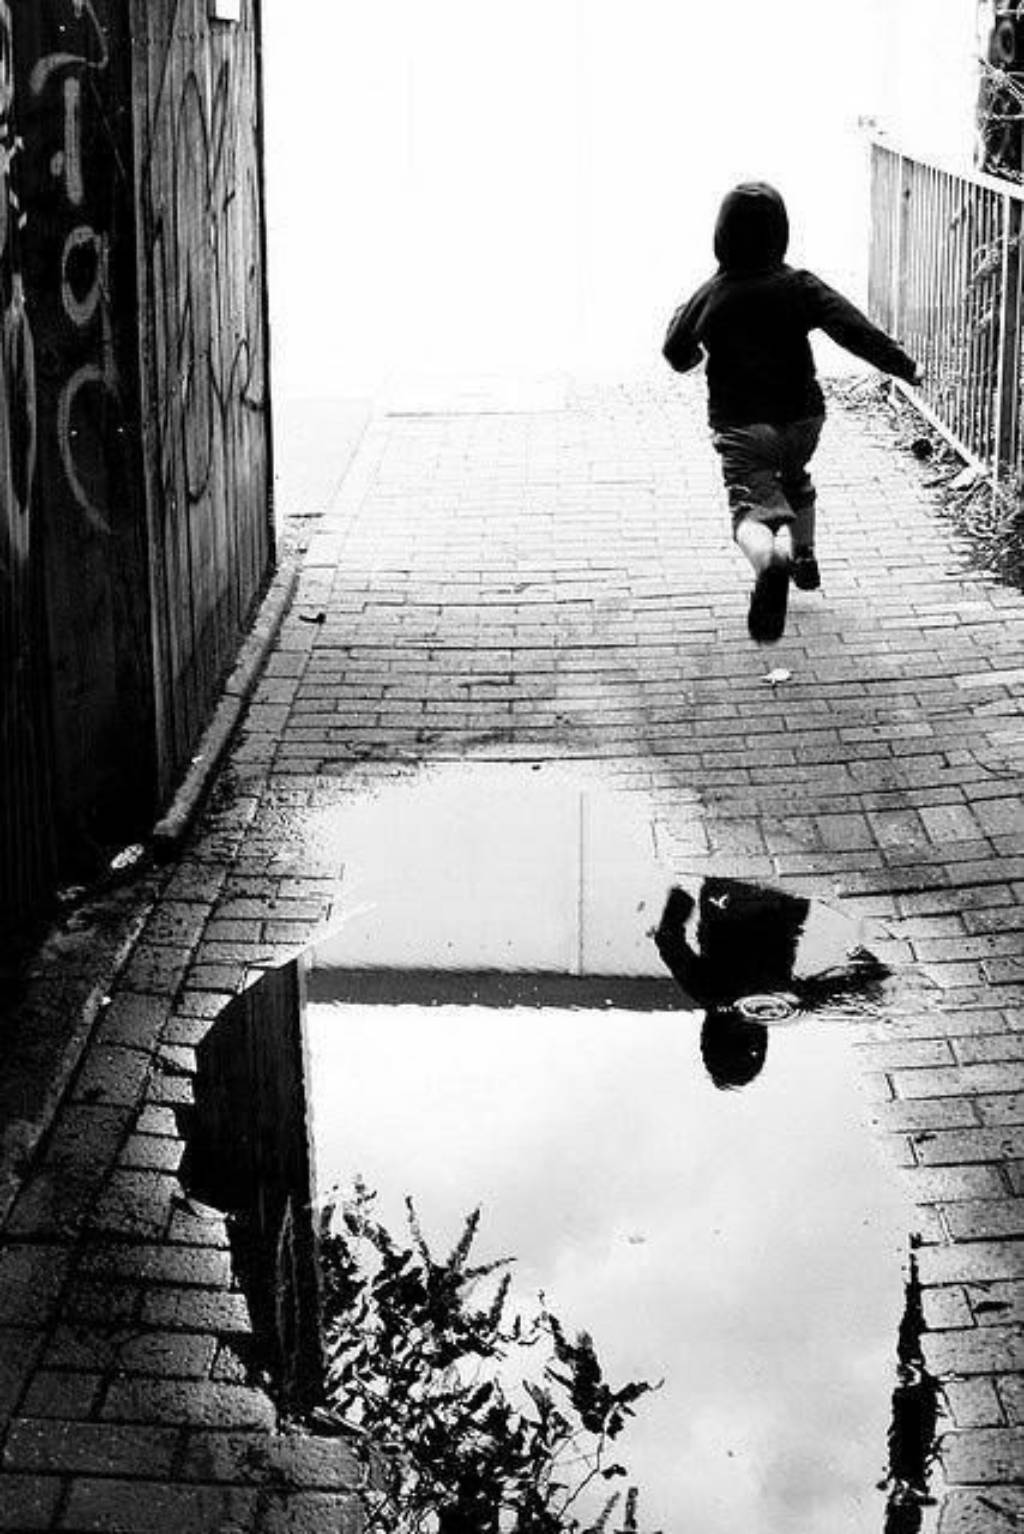 Kid jumping puddle by Henri Cartier Bresson